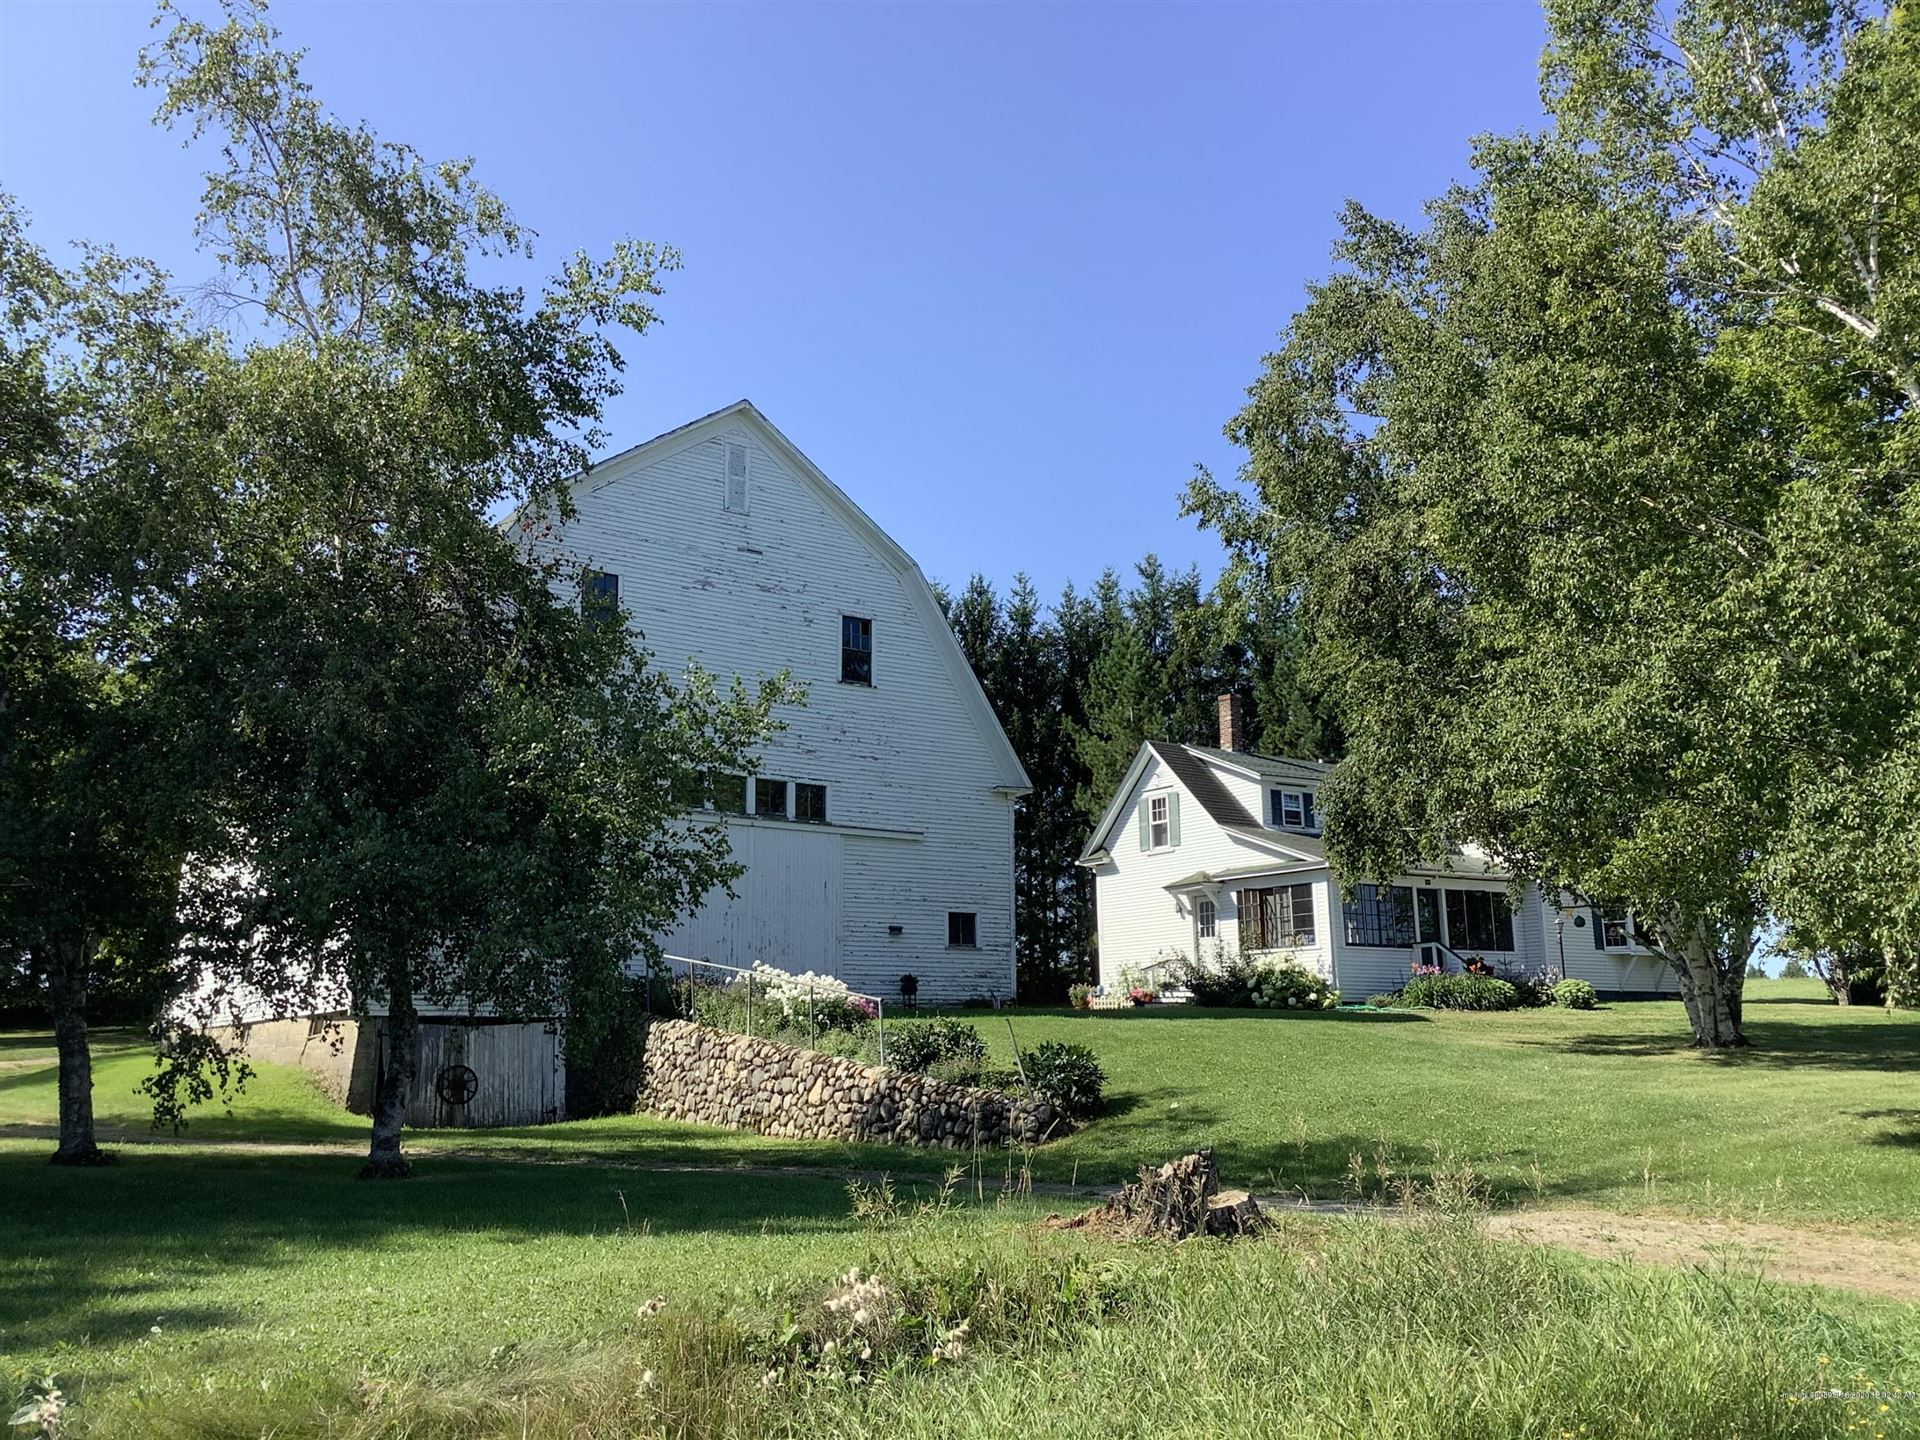 Photo of 101 Maple Grove Road, Fort Fairfield, ME 04742 (MLS # 1464950)